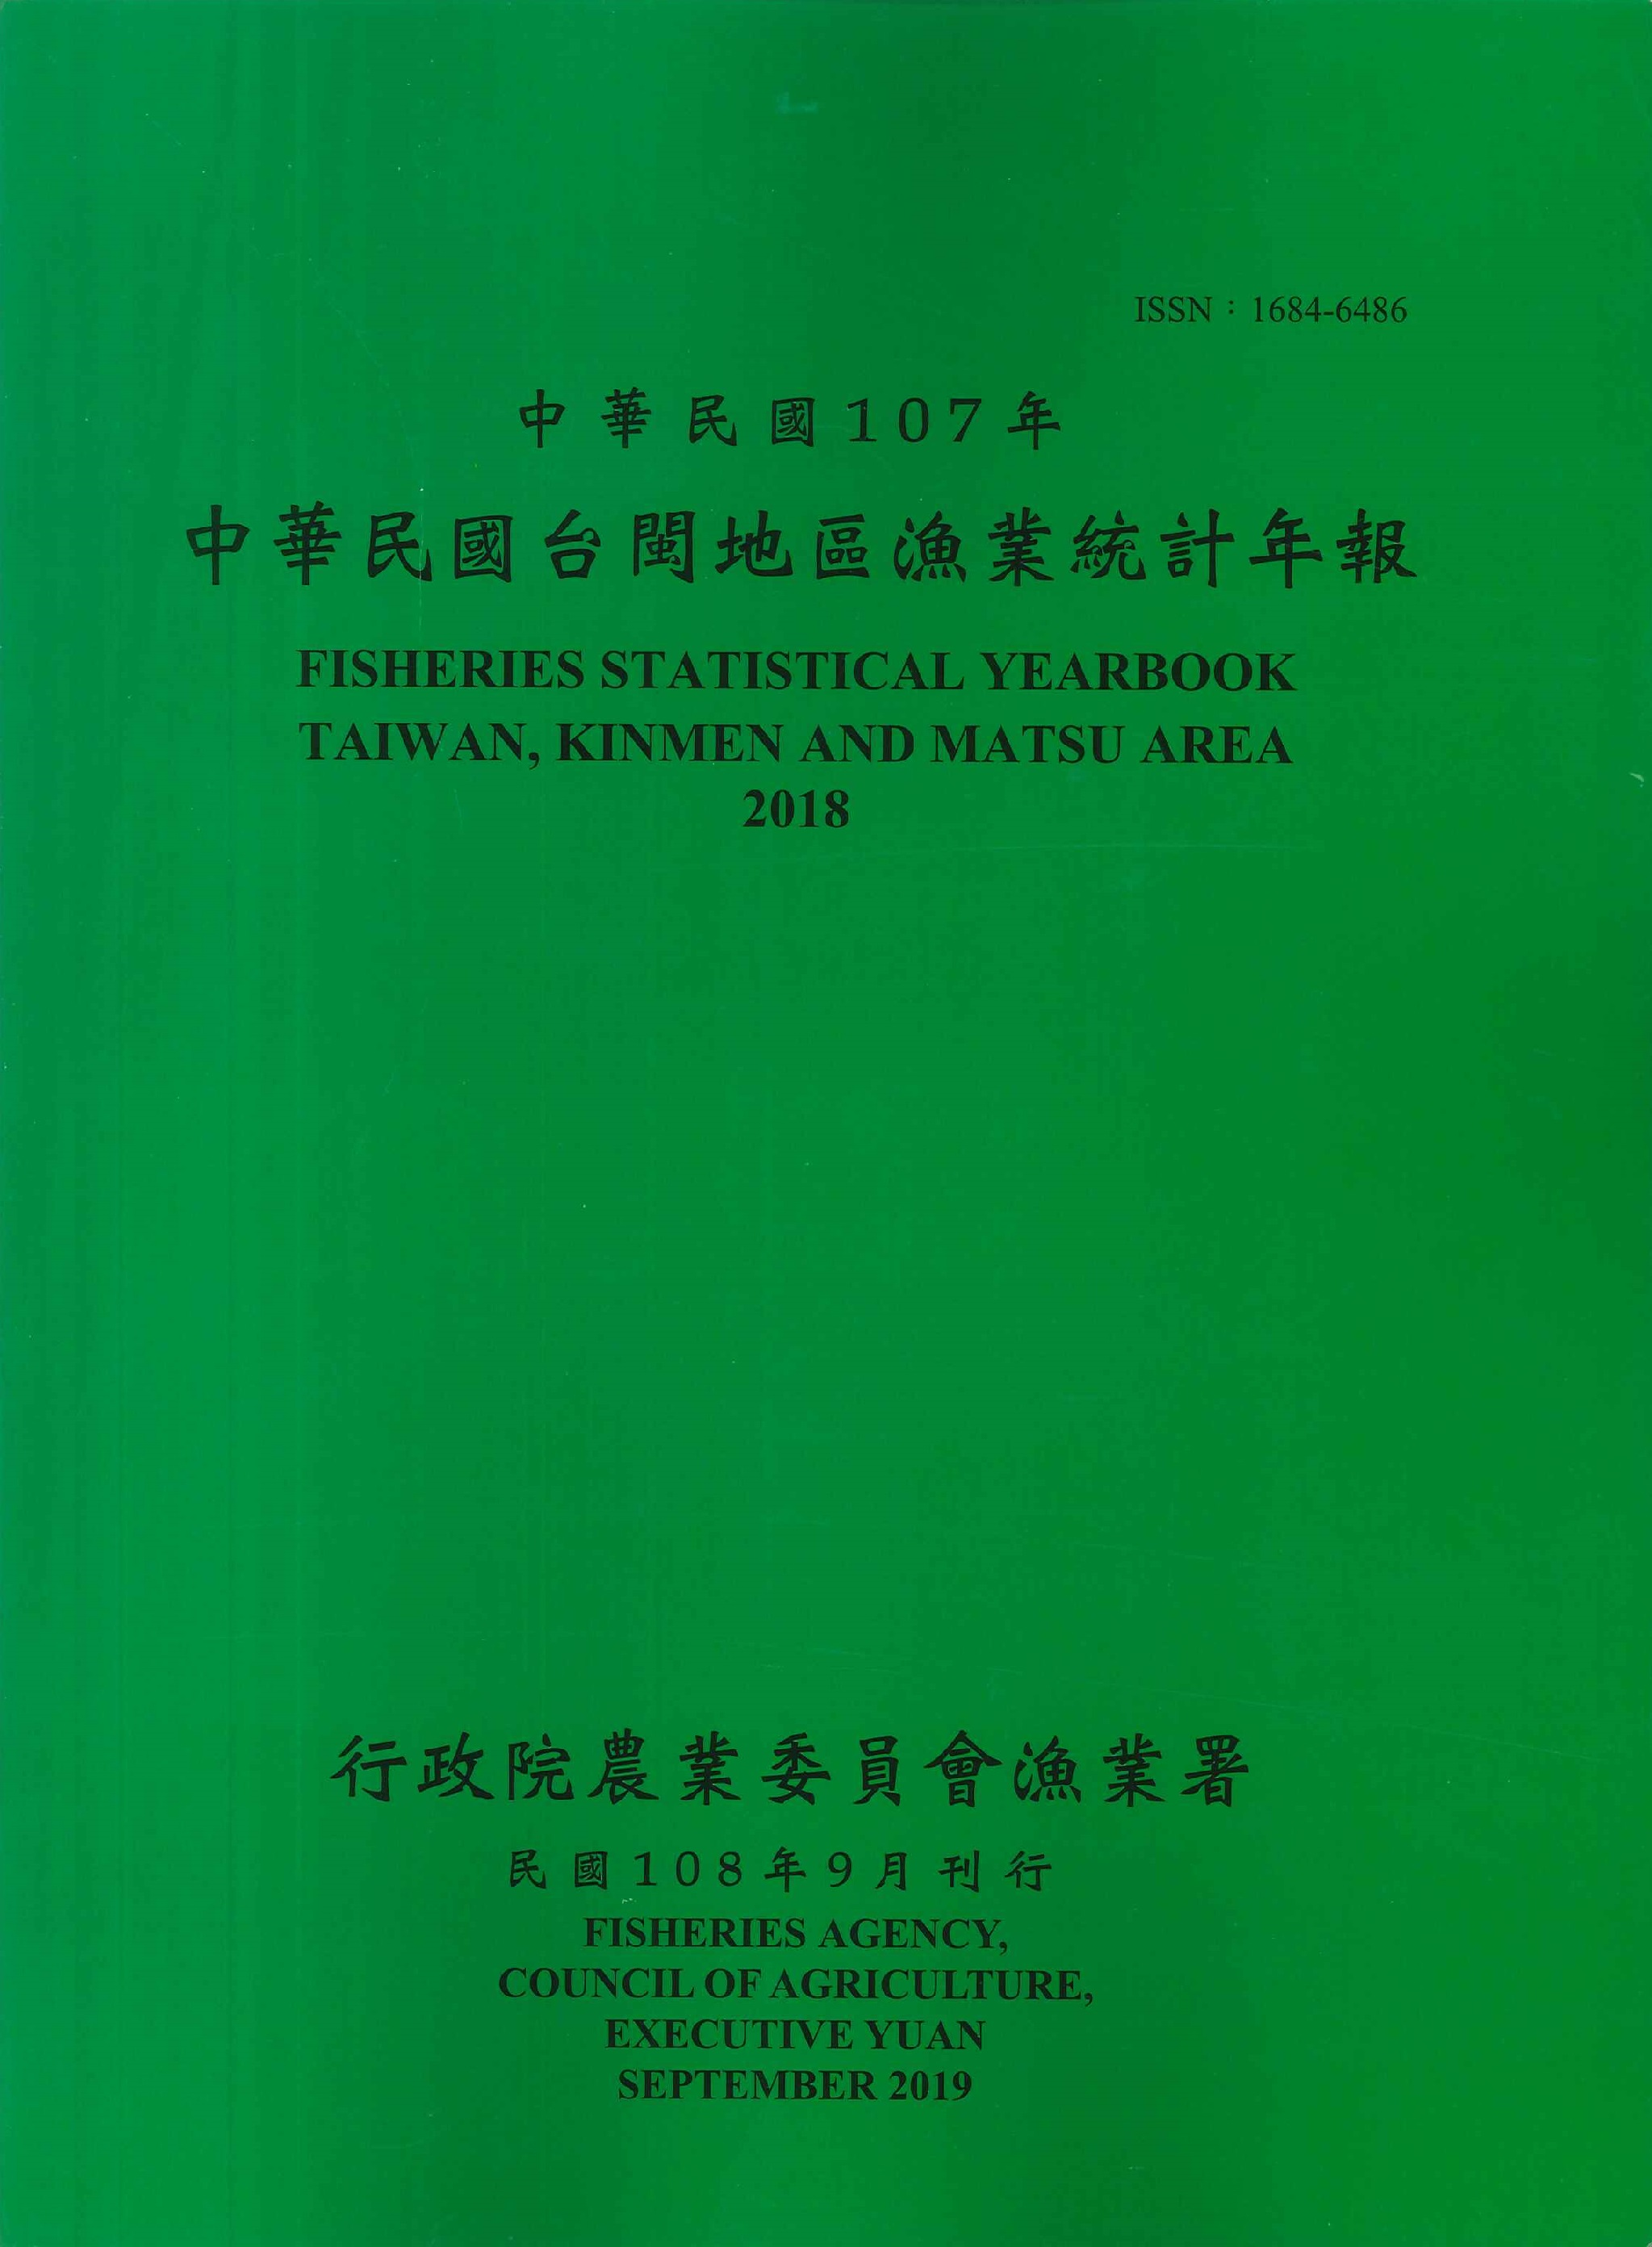 中華民國台閩地區漁業統計年報=Fisheries statistical yearbook, Taiwan, Kinmen and Matsu Area